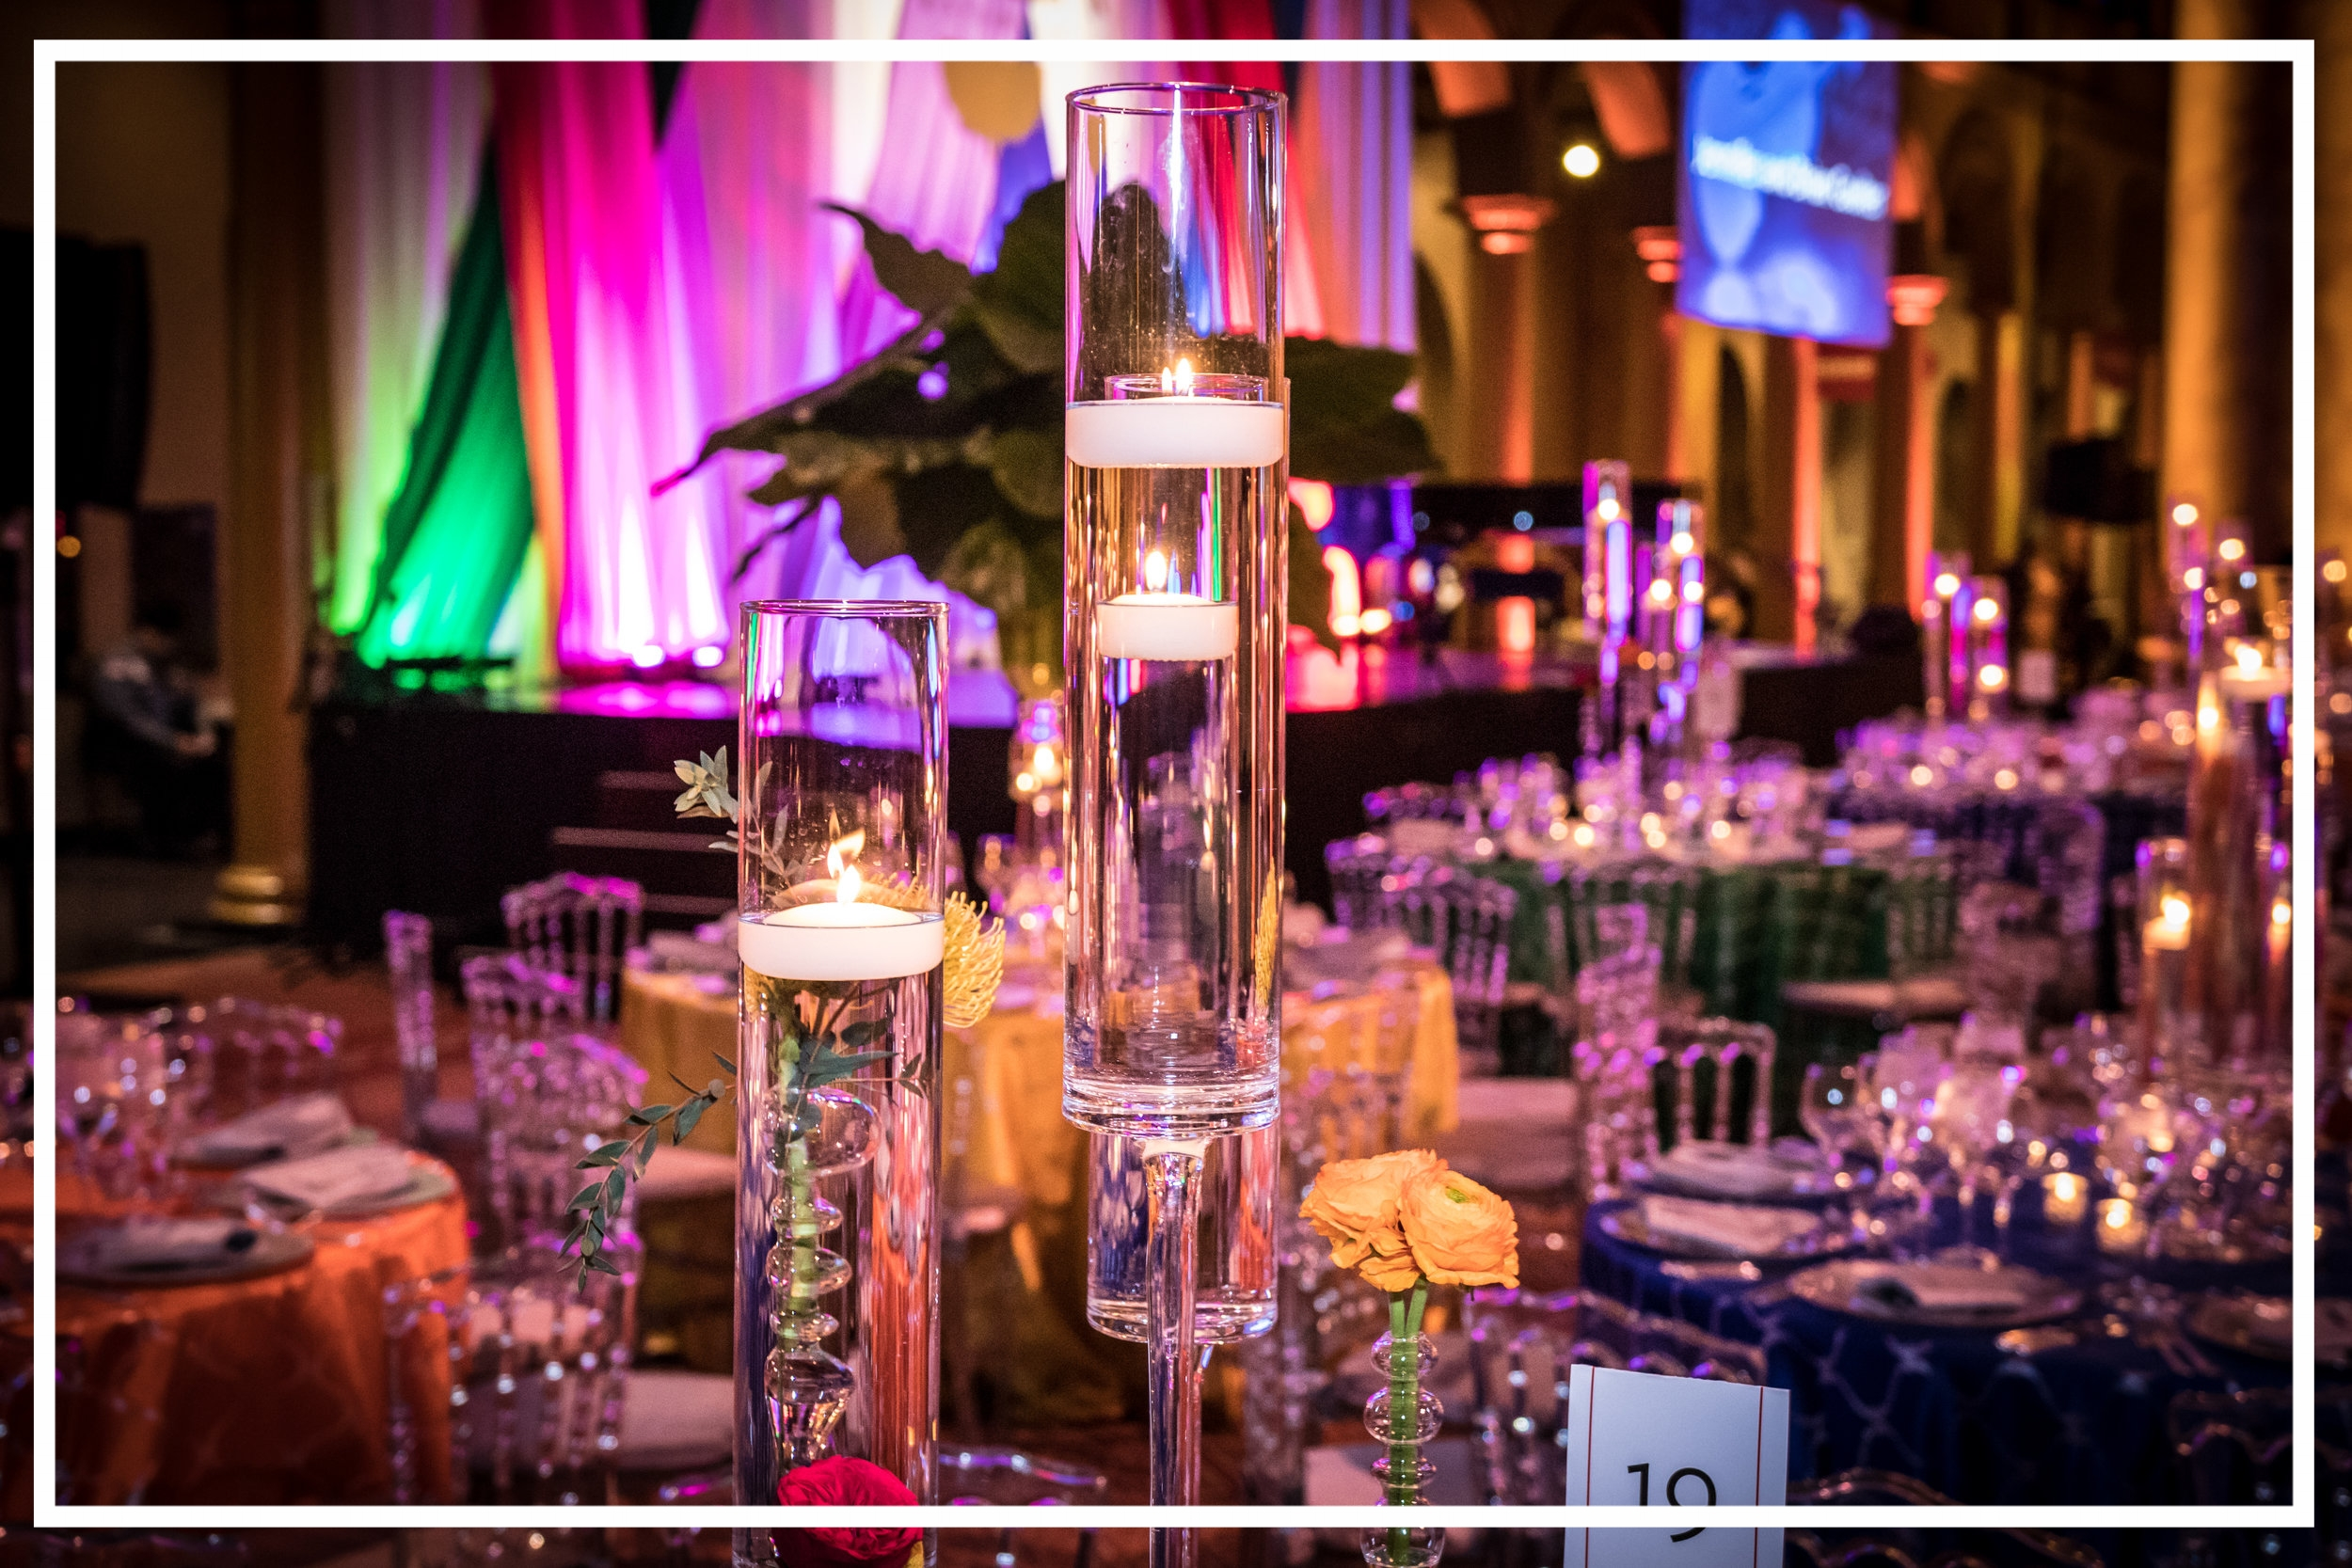 Lovely centerpieces at the Washington Performing Arts Gala by Event Revolution